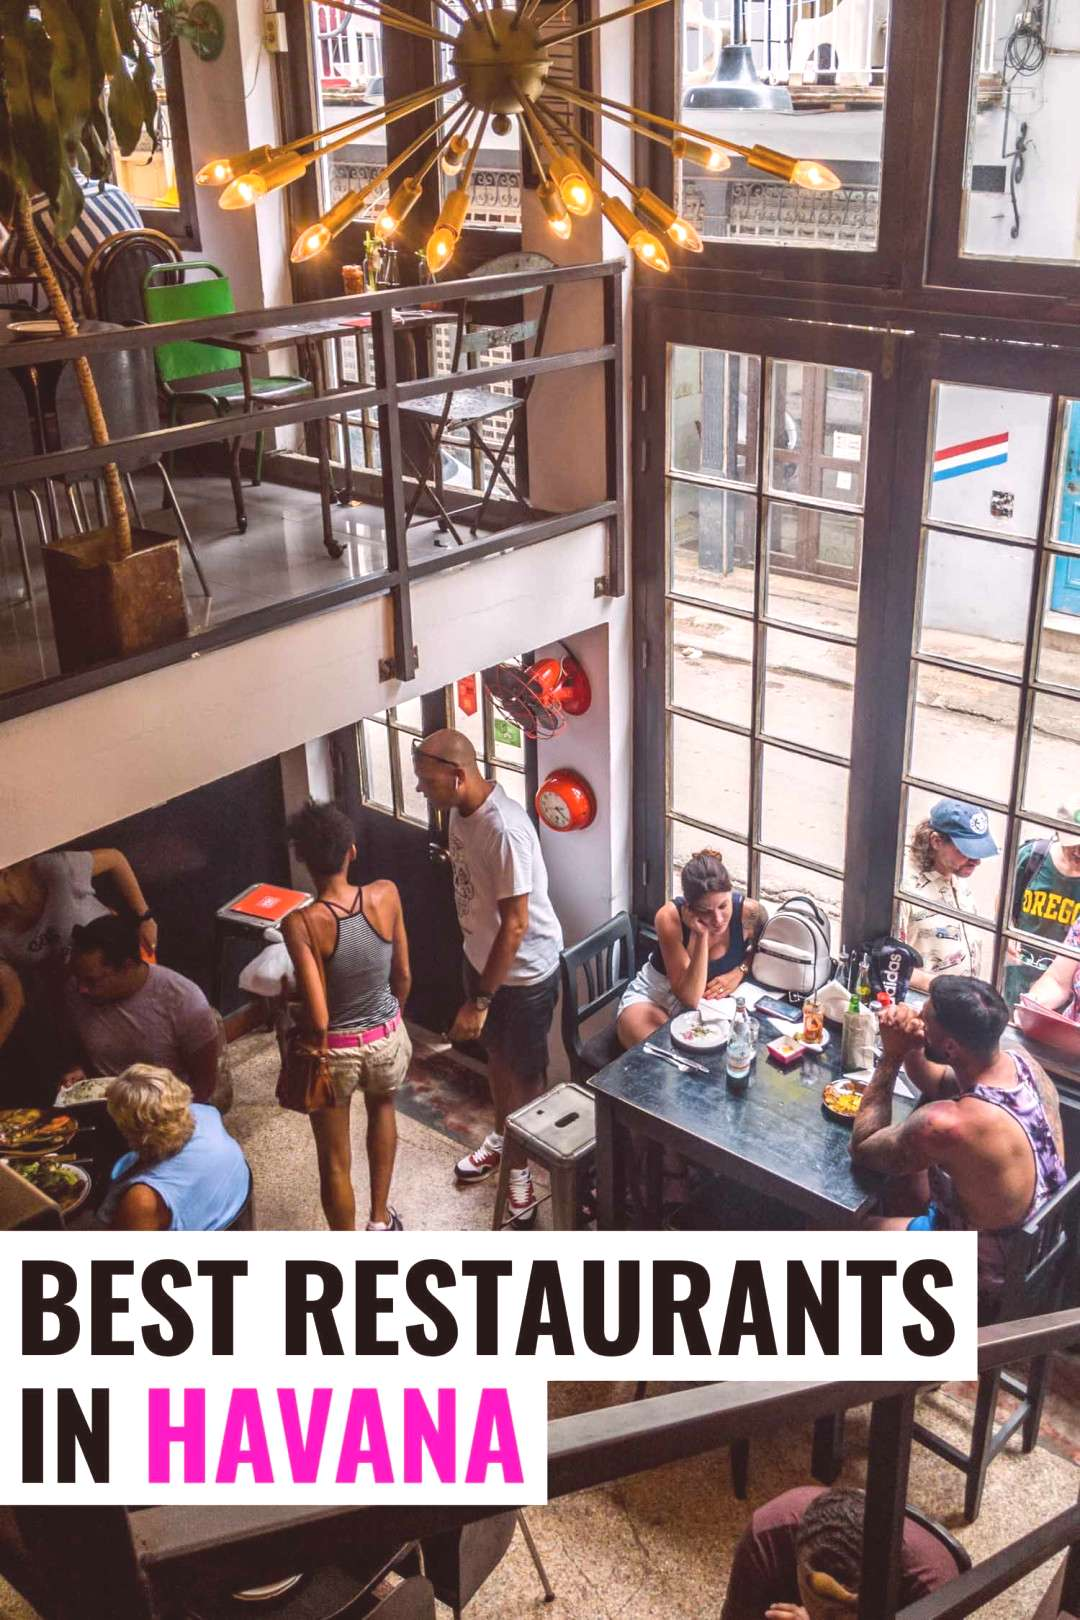 Foodie travel 516506651016354798 -  Best restaurants in Havana by neighbourhoods. Find out where to